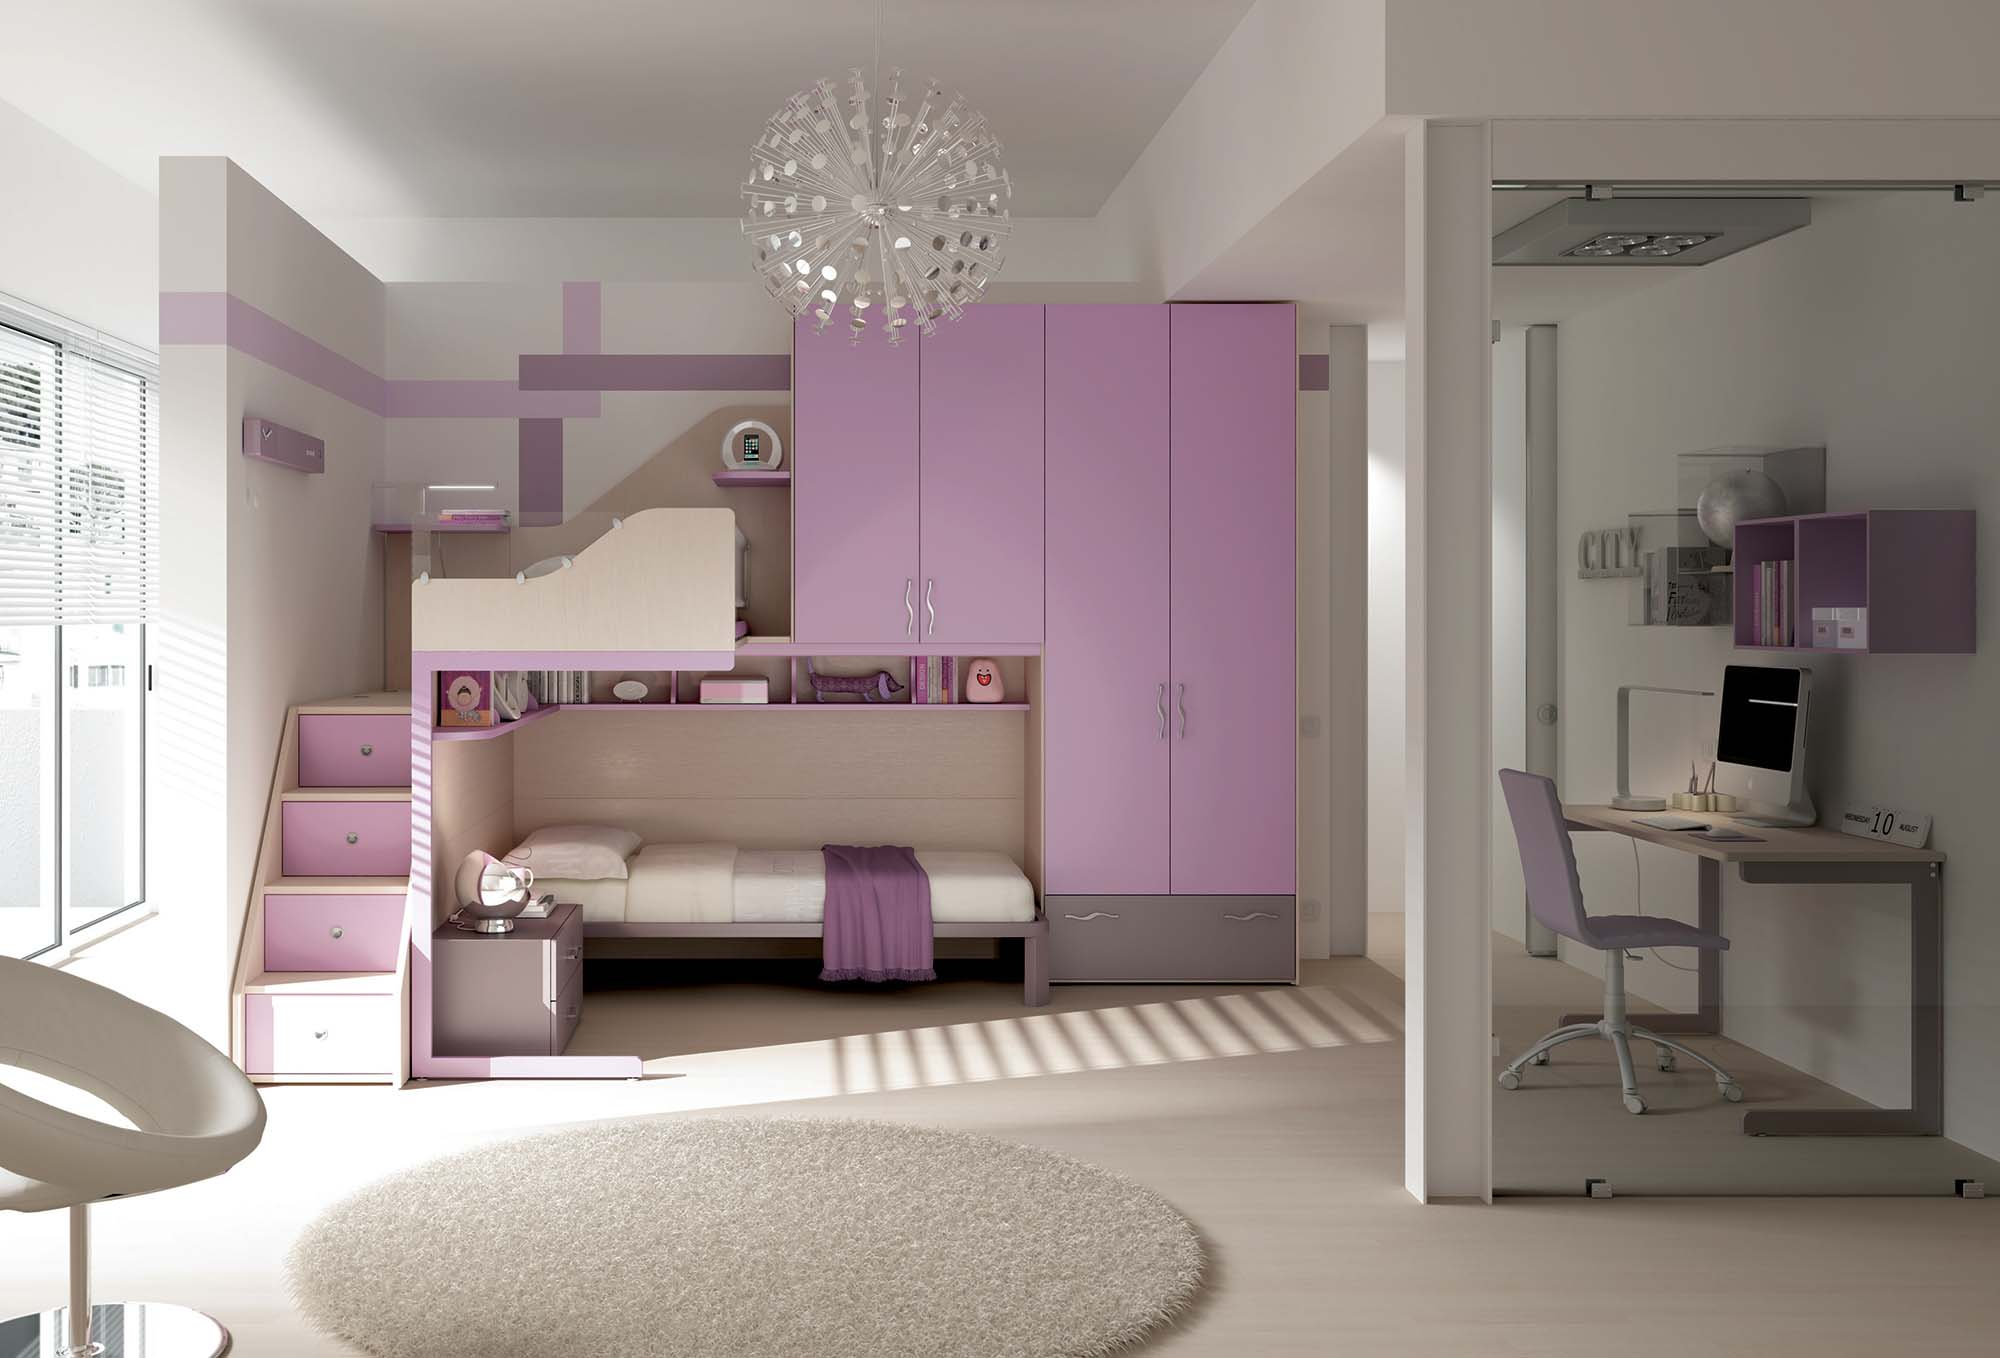 chambre enfant pour fille studieuse fun moretti compact so nuit. Black Bedroom Furniture Sets. Home Design Ideas